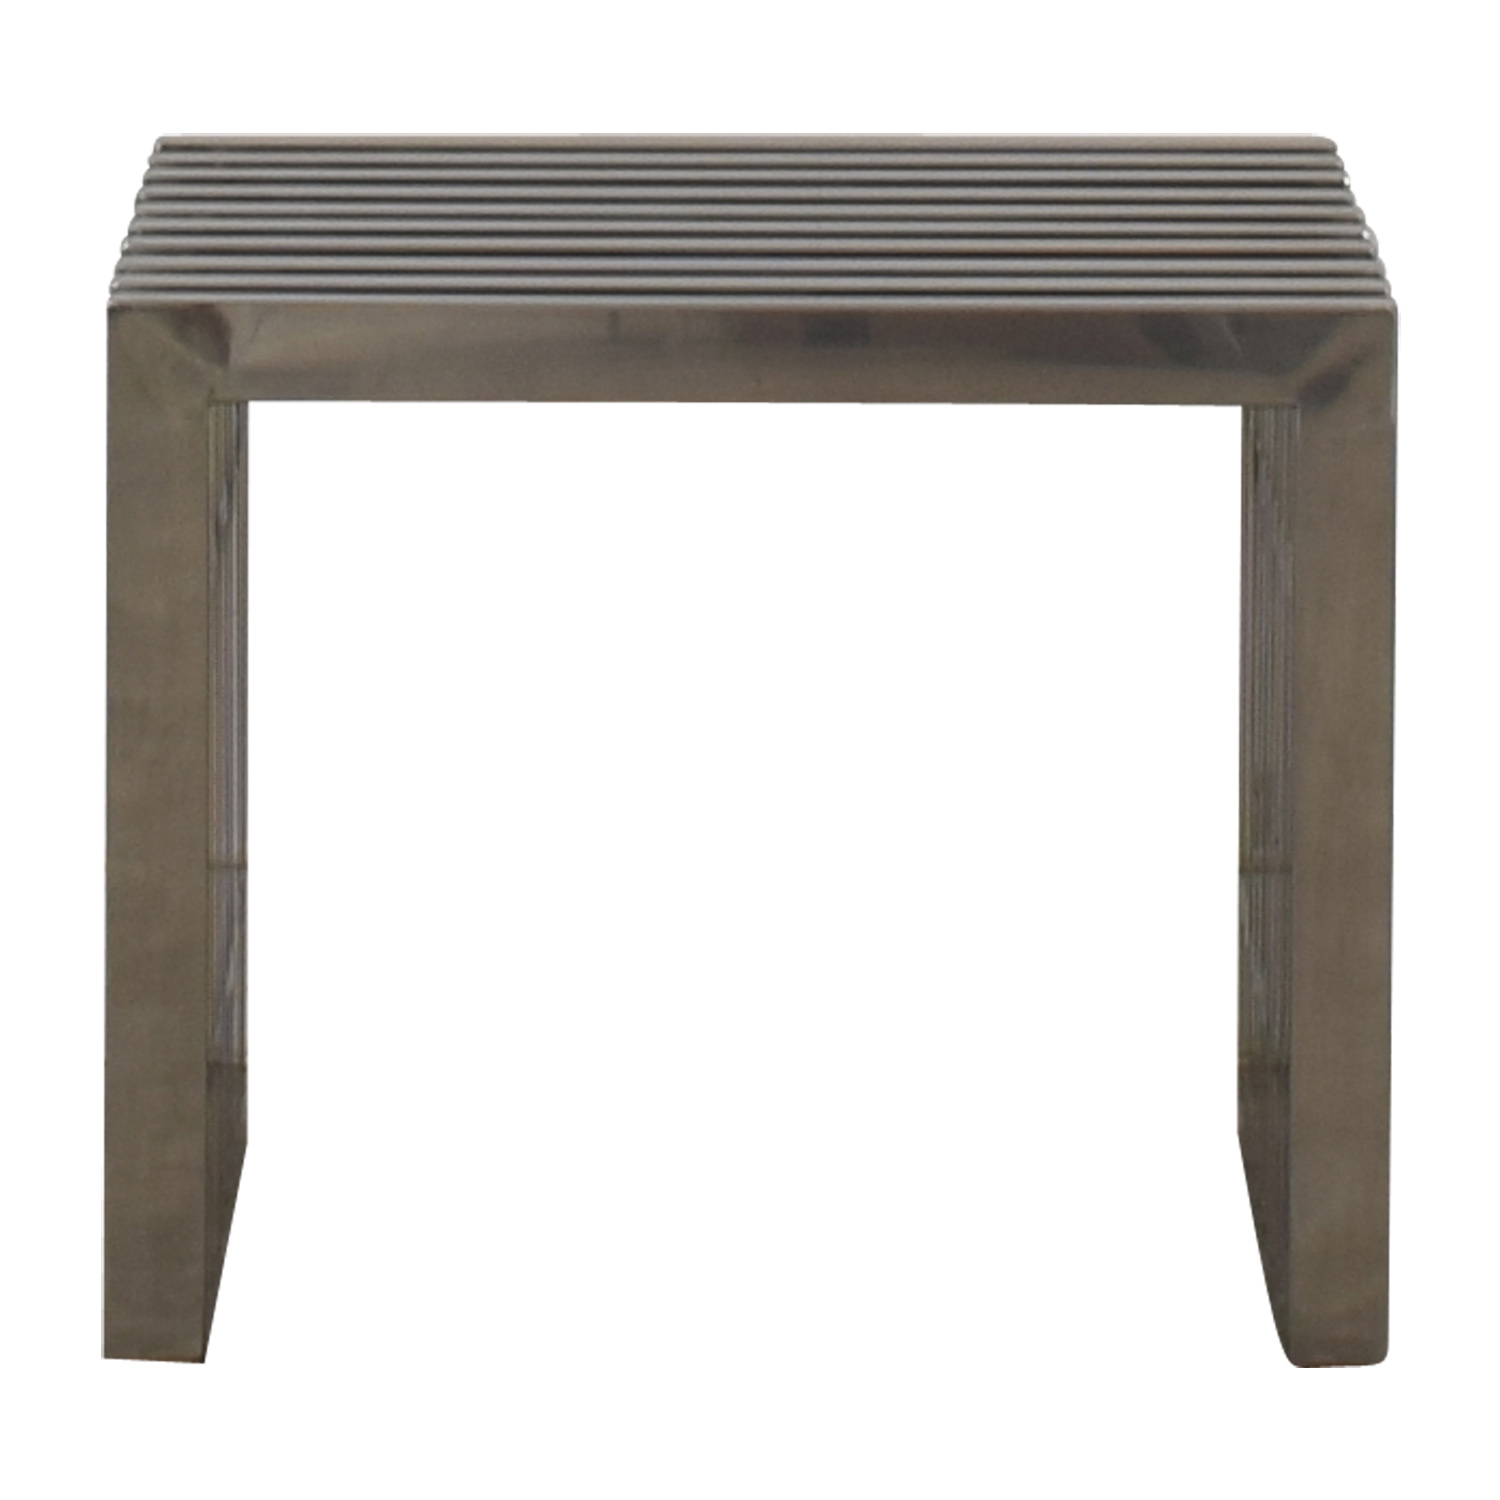 Mid-Century Metal Bench or End Table / Chairs